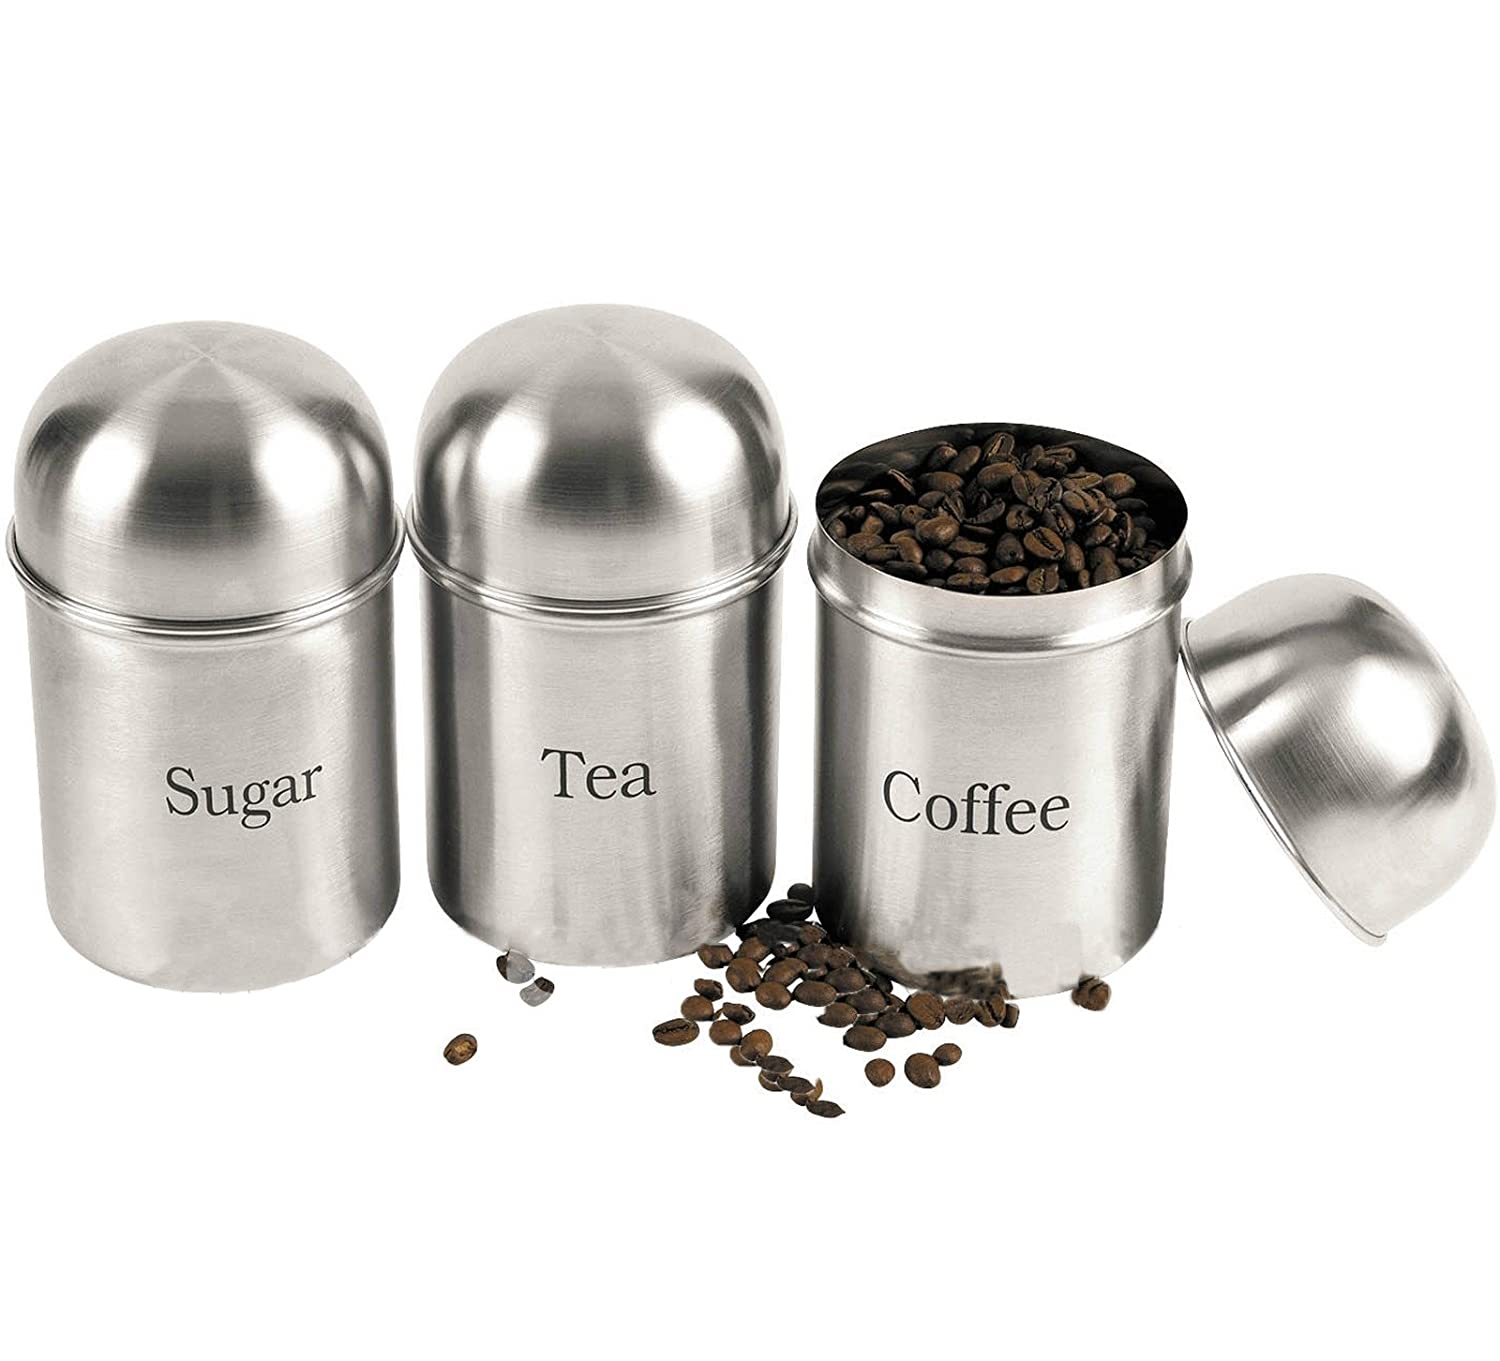 3PC CANISTERS COFFEE SUGAR TEA STAINLESS STEEL STORAGE JARS POT KITCHEN SET NEW Prima Others